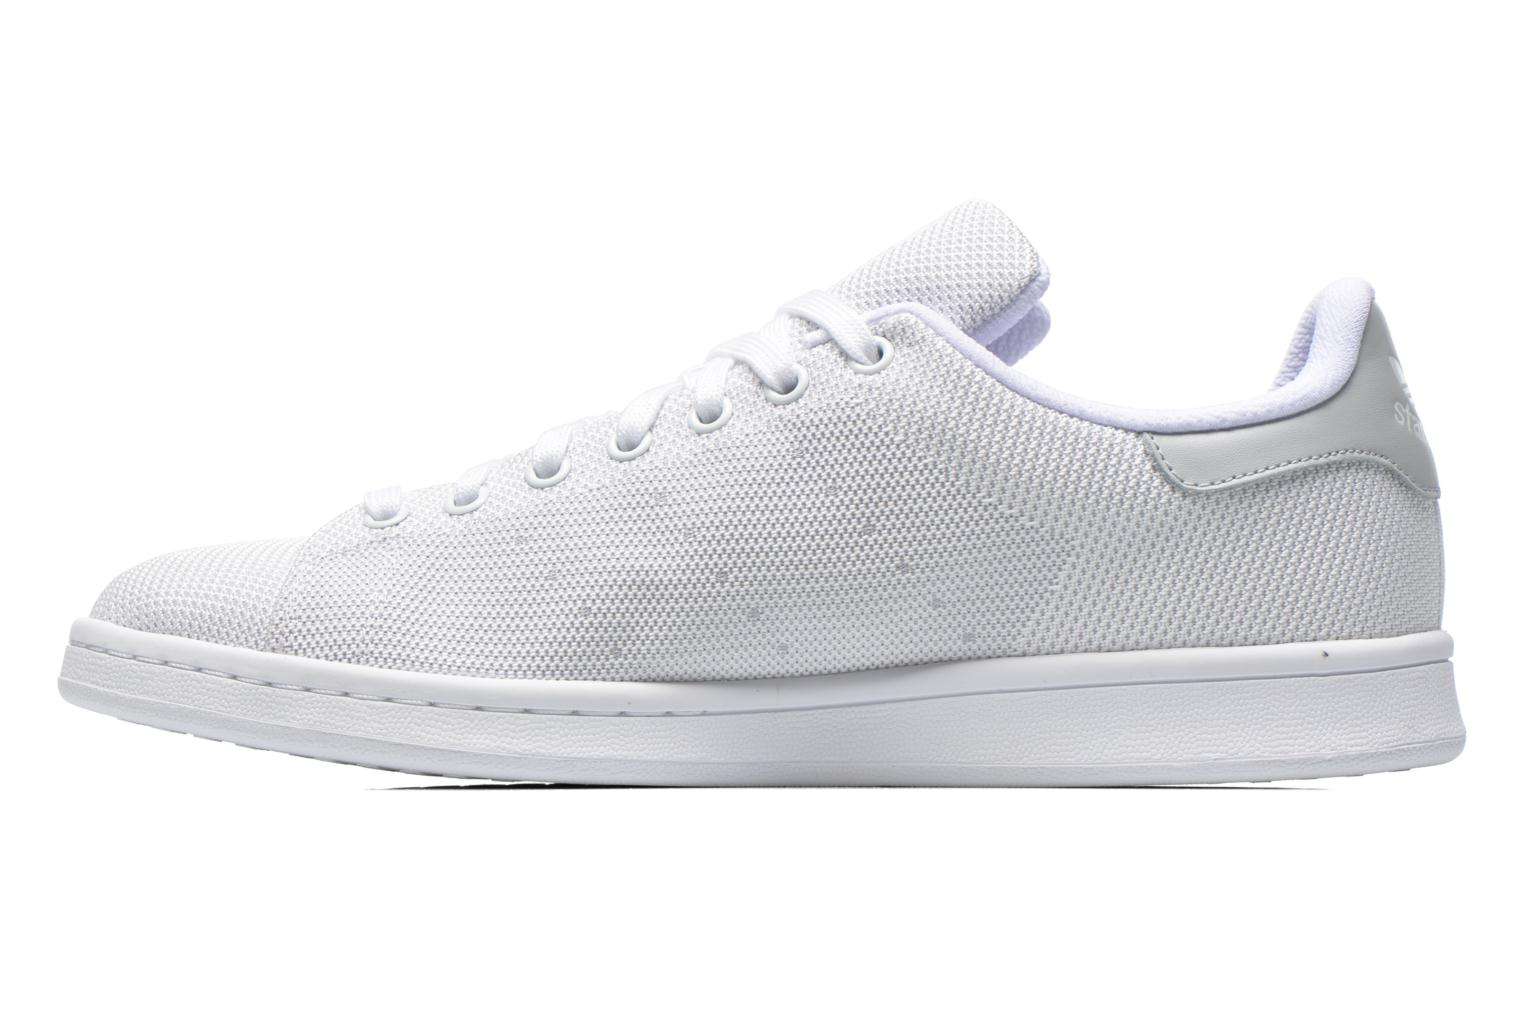 Stan Smith Grdelg/Ftwbla/Ftwbla